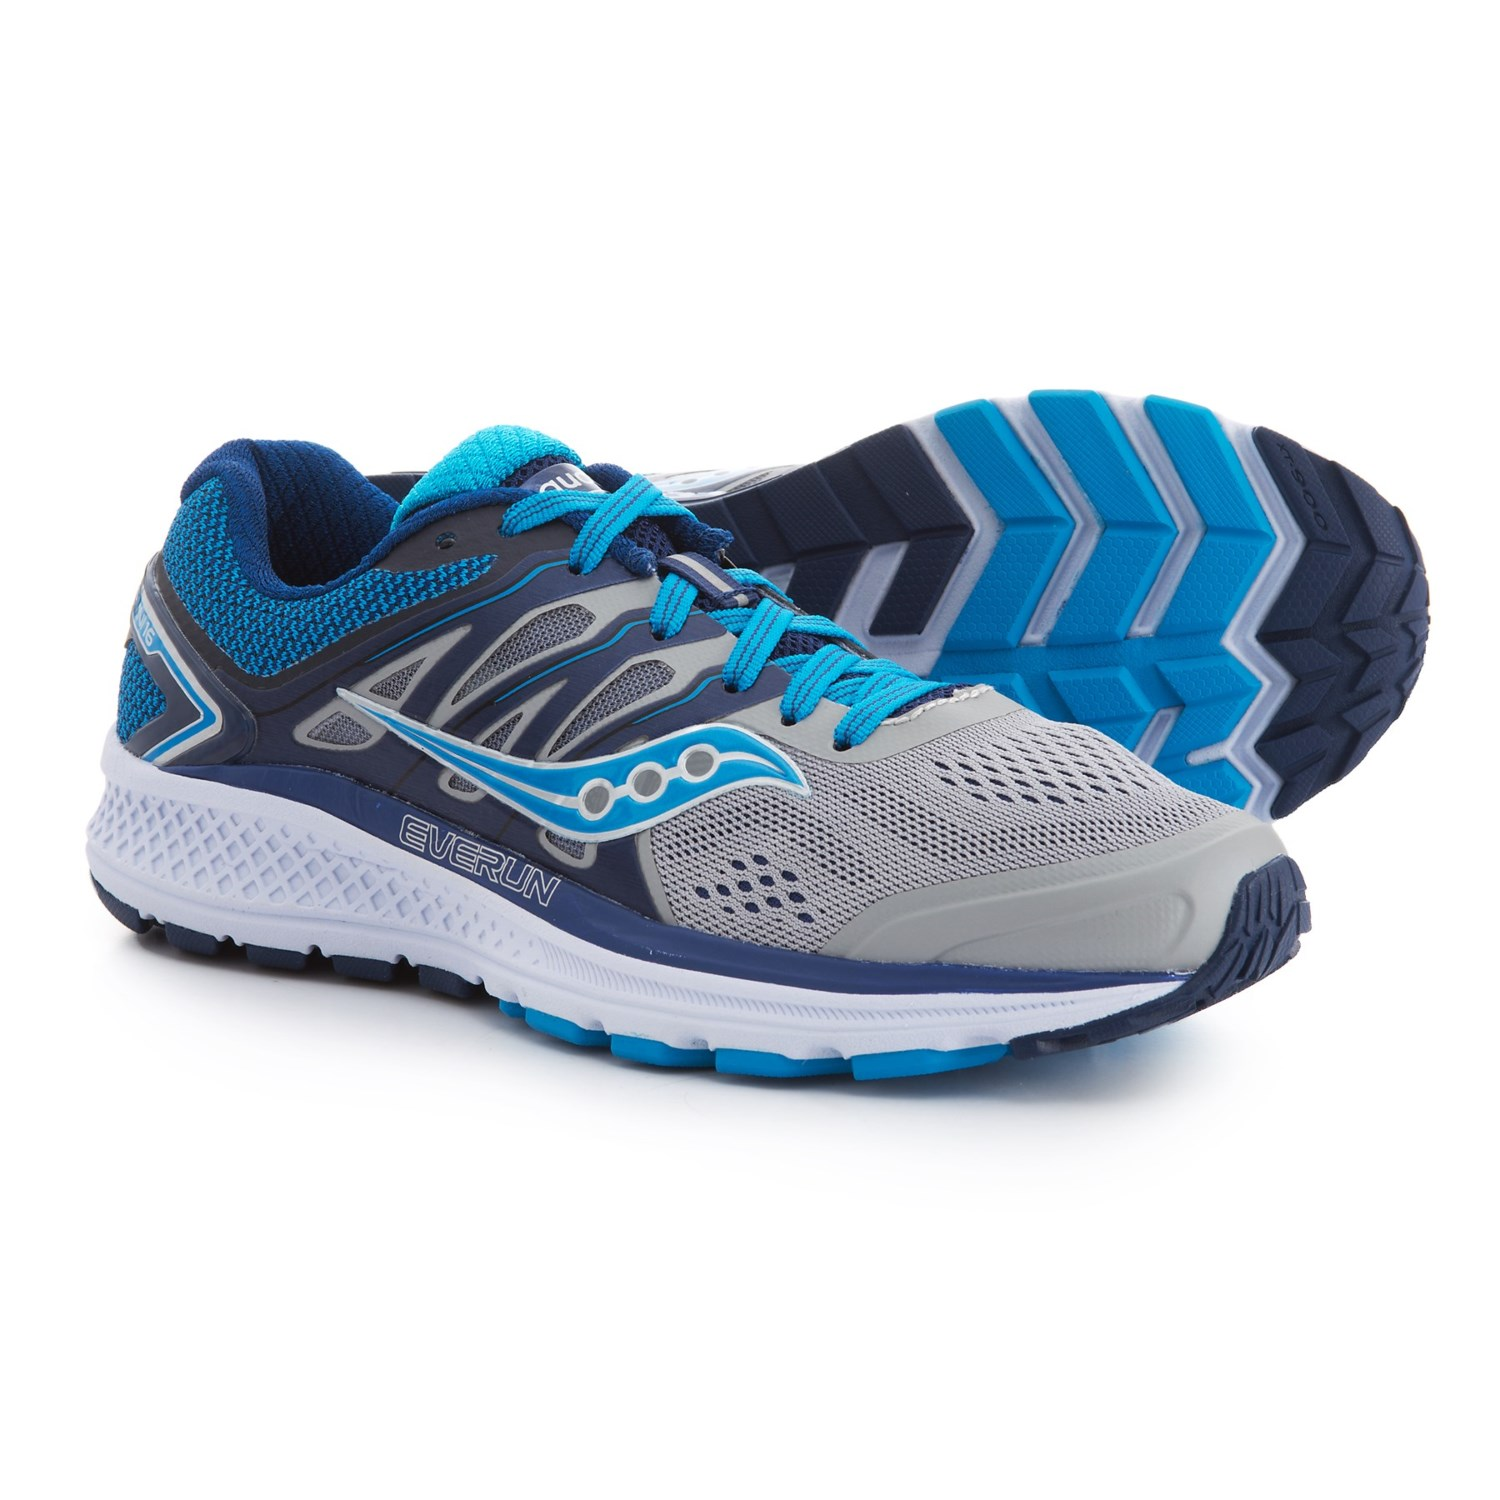 Saucony Omni 16 Running Shoes (For Women) - Save 46%